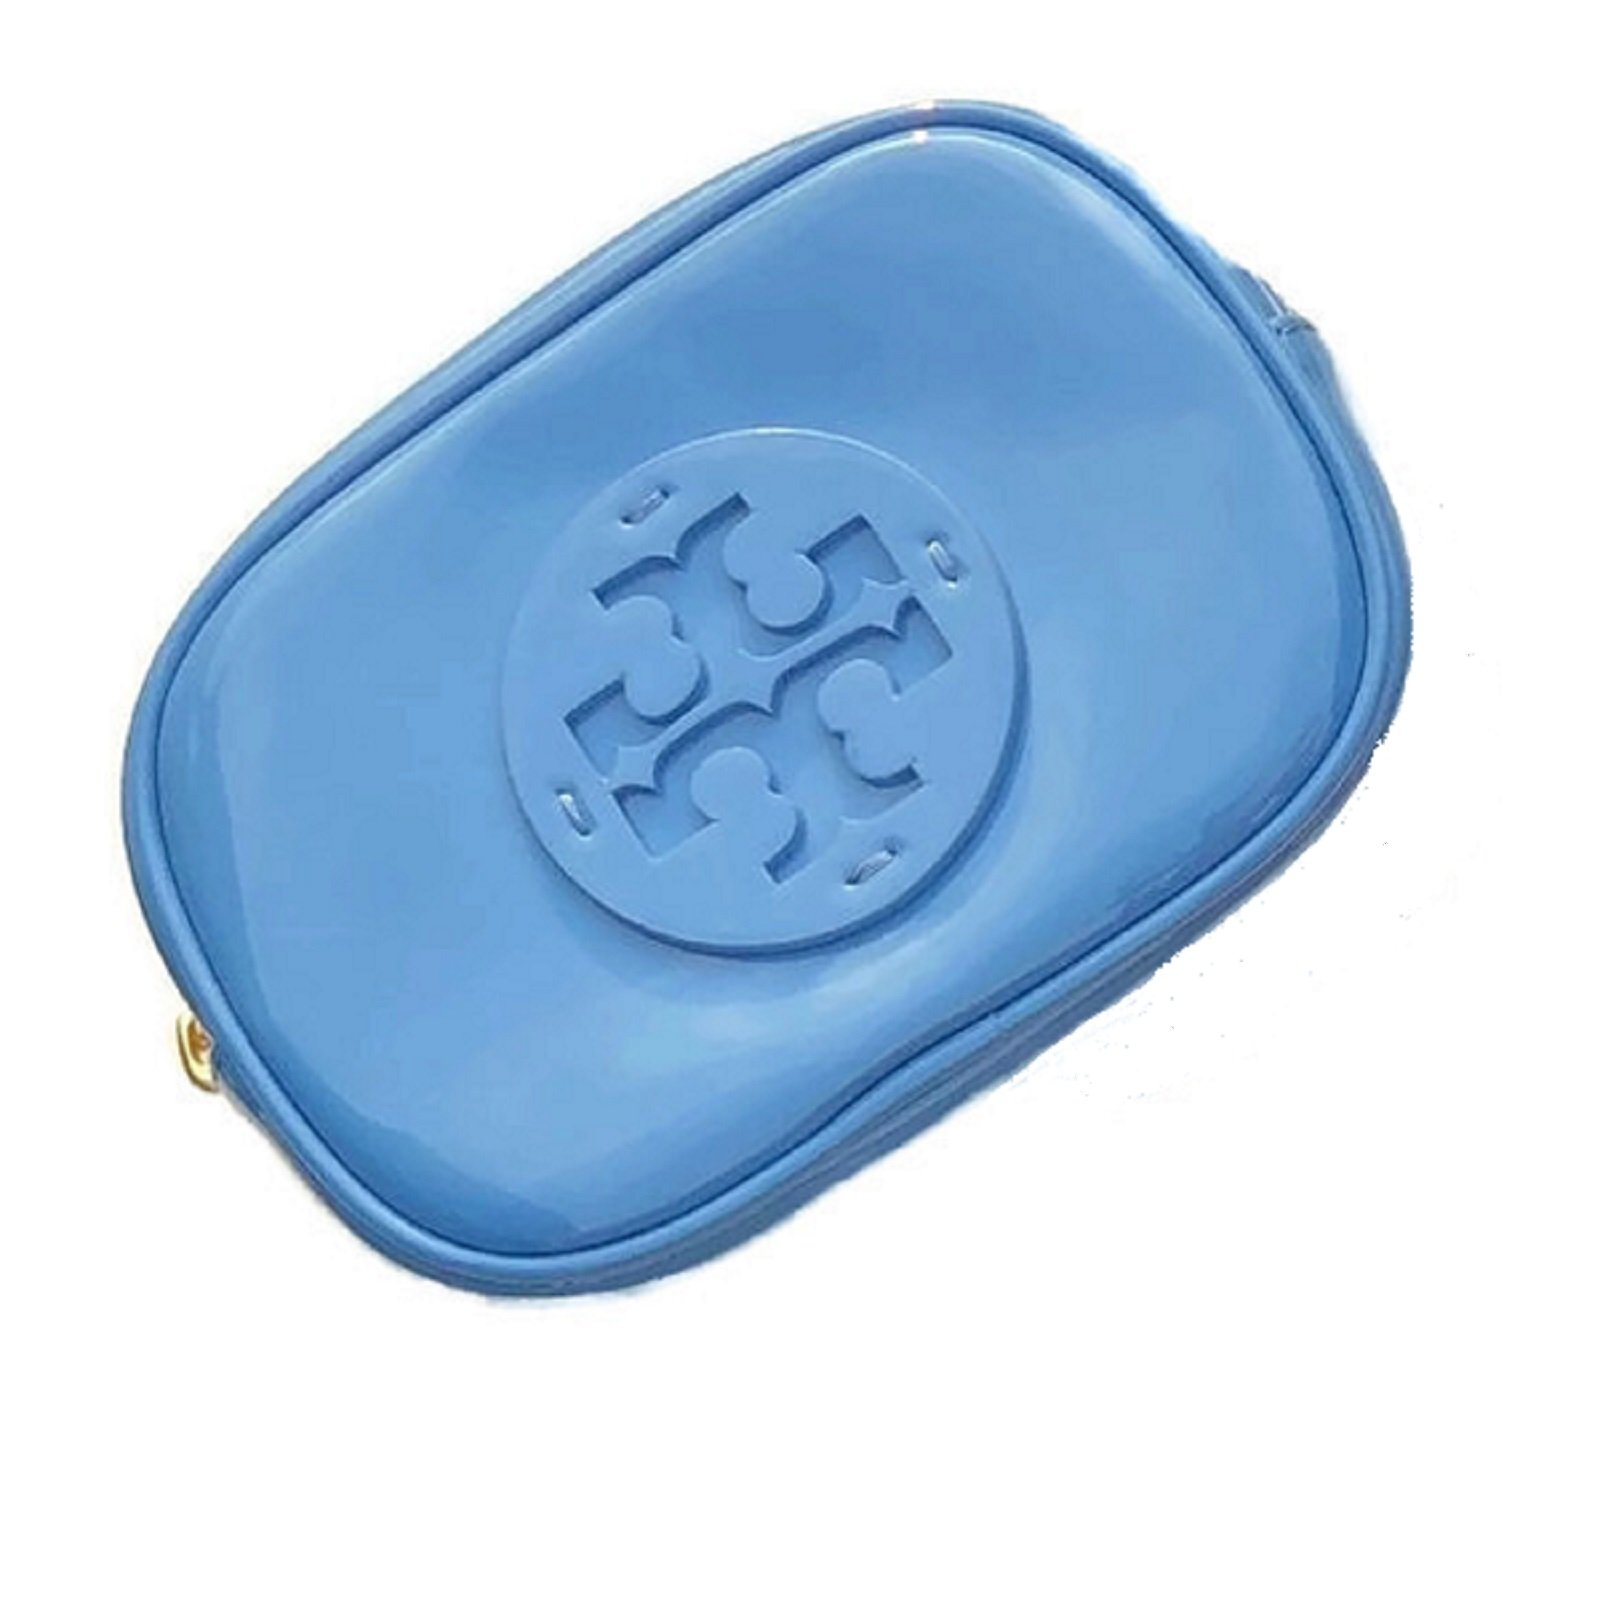 Tory Burch Stacked Patent Cosmetic Case Bag Montego Blue